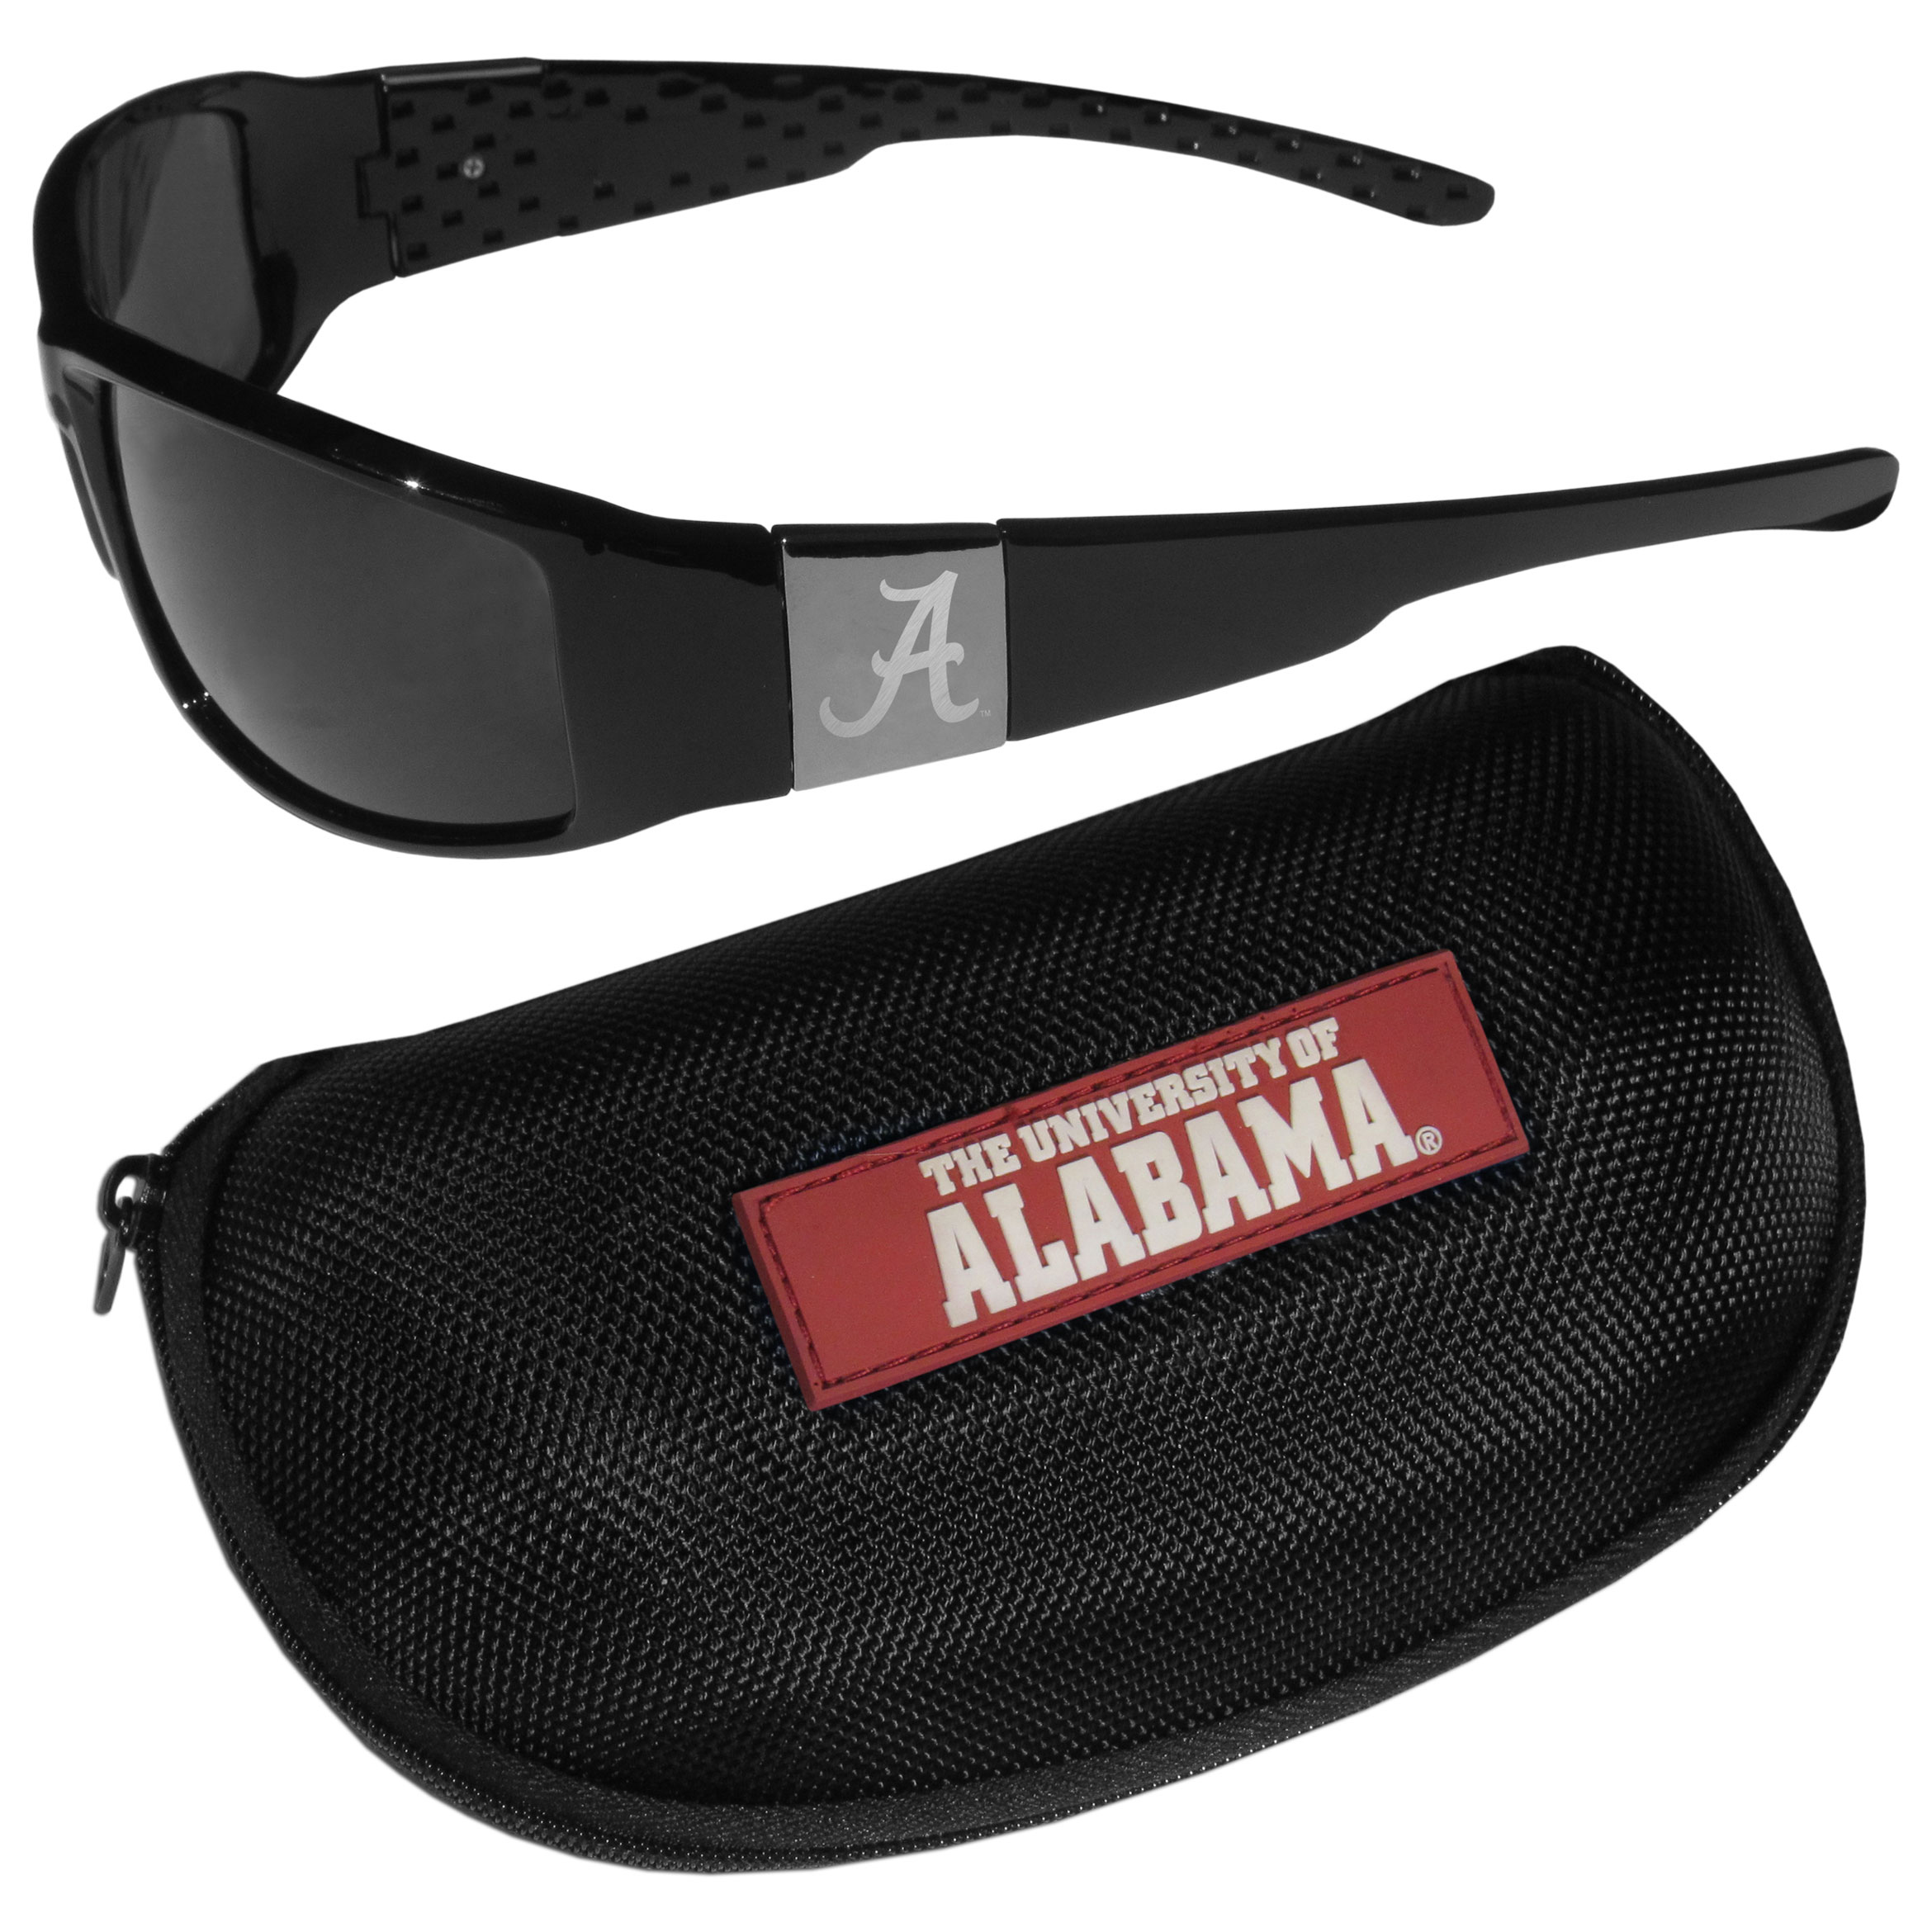 Alabama Crimson Tide Chrome Wrap Sunglasses and Zippered Carrying Case - These designer inspired frames have a sleek look in all black with high-polish chrome Alabama Crimson Tide shields on each arm with an etched logo. The shades are perfect any outdoor activity like; golfing, driving, hiking, fishing or cheering on the team at a tailgating event or an at home game day BBQ with a lens rating of 100% UVA/UVB for maximum UV protection. The high-quality frames are as durable as they are fashionable and with their classic look they are perfect fan accessory that can be worn everyday for every occasion. The shades come with a zippered hard shell case to keep your sunglasses safe.